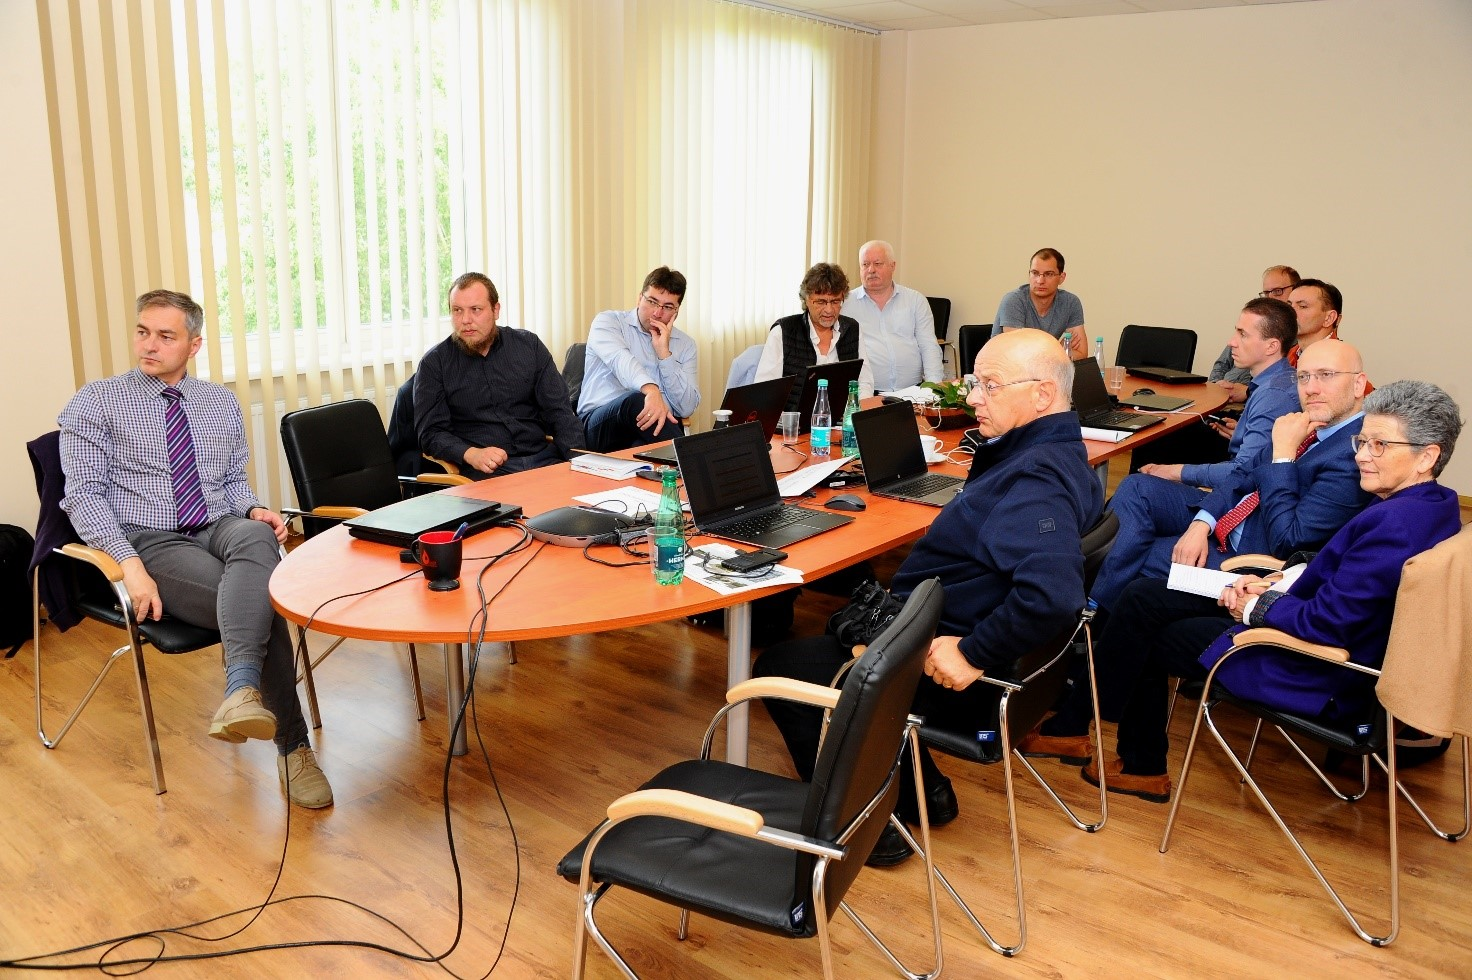 ETSON organisations are interested in Safety Analysis and Licensing issues of fusion installations. In the workshop on fusion safety at LEI the current participation and further possibilities of ETSON organisations in fusion research were discussed © LEI